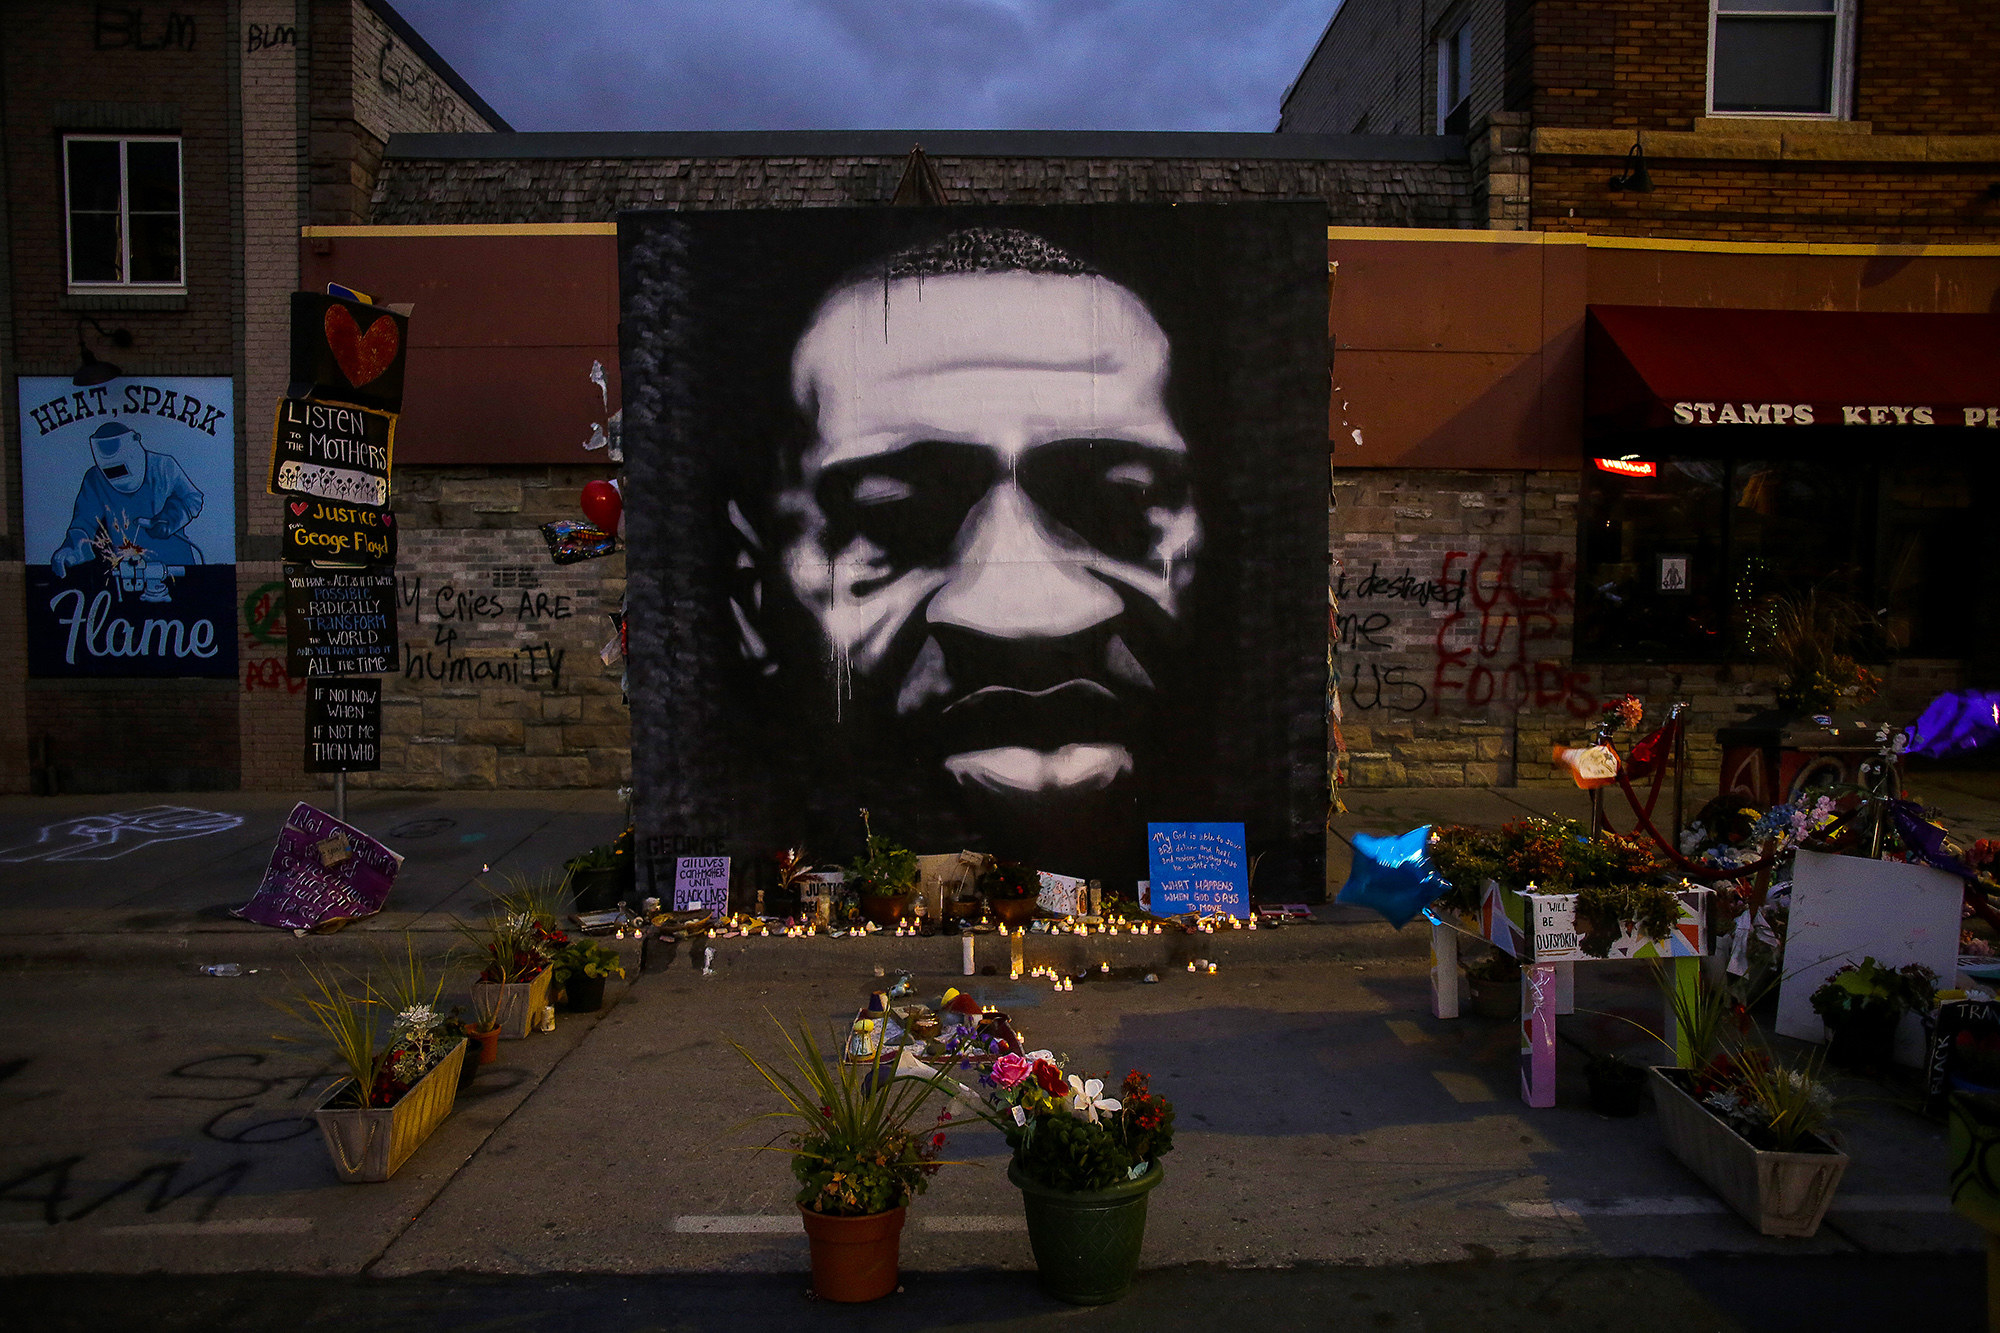 The George Floyd memorial outside Cup Foods, featuring a mural of Floyd's face, candles, and flowers